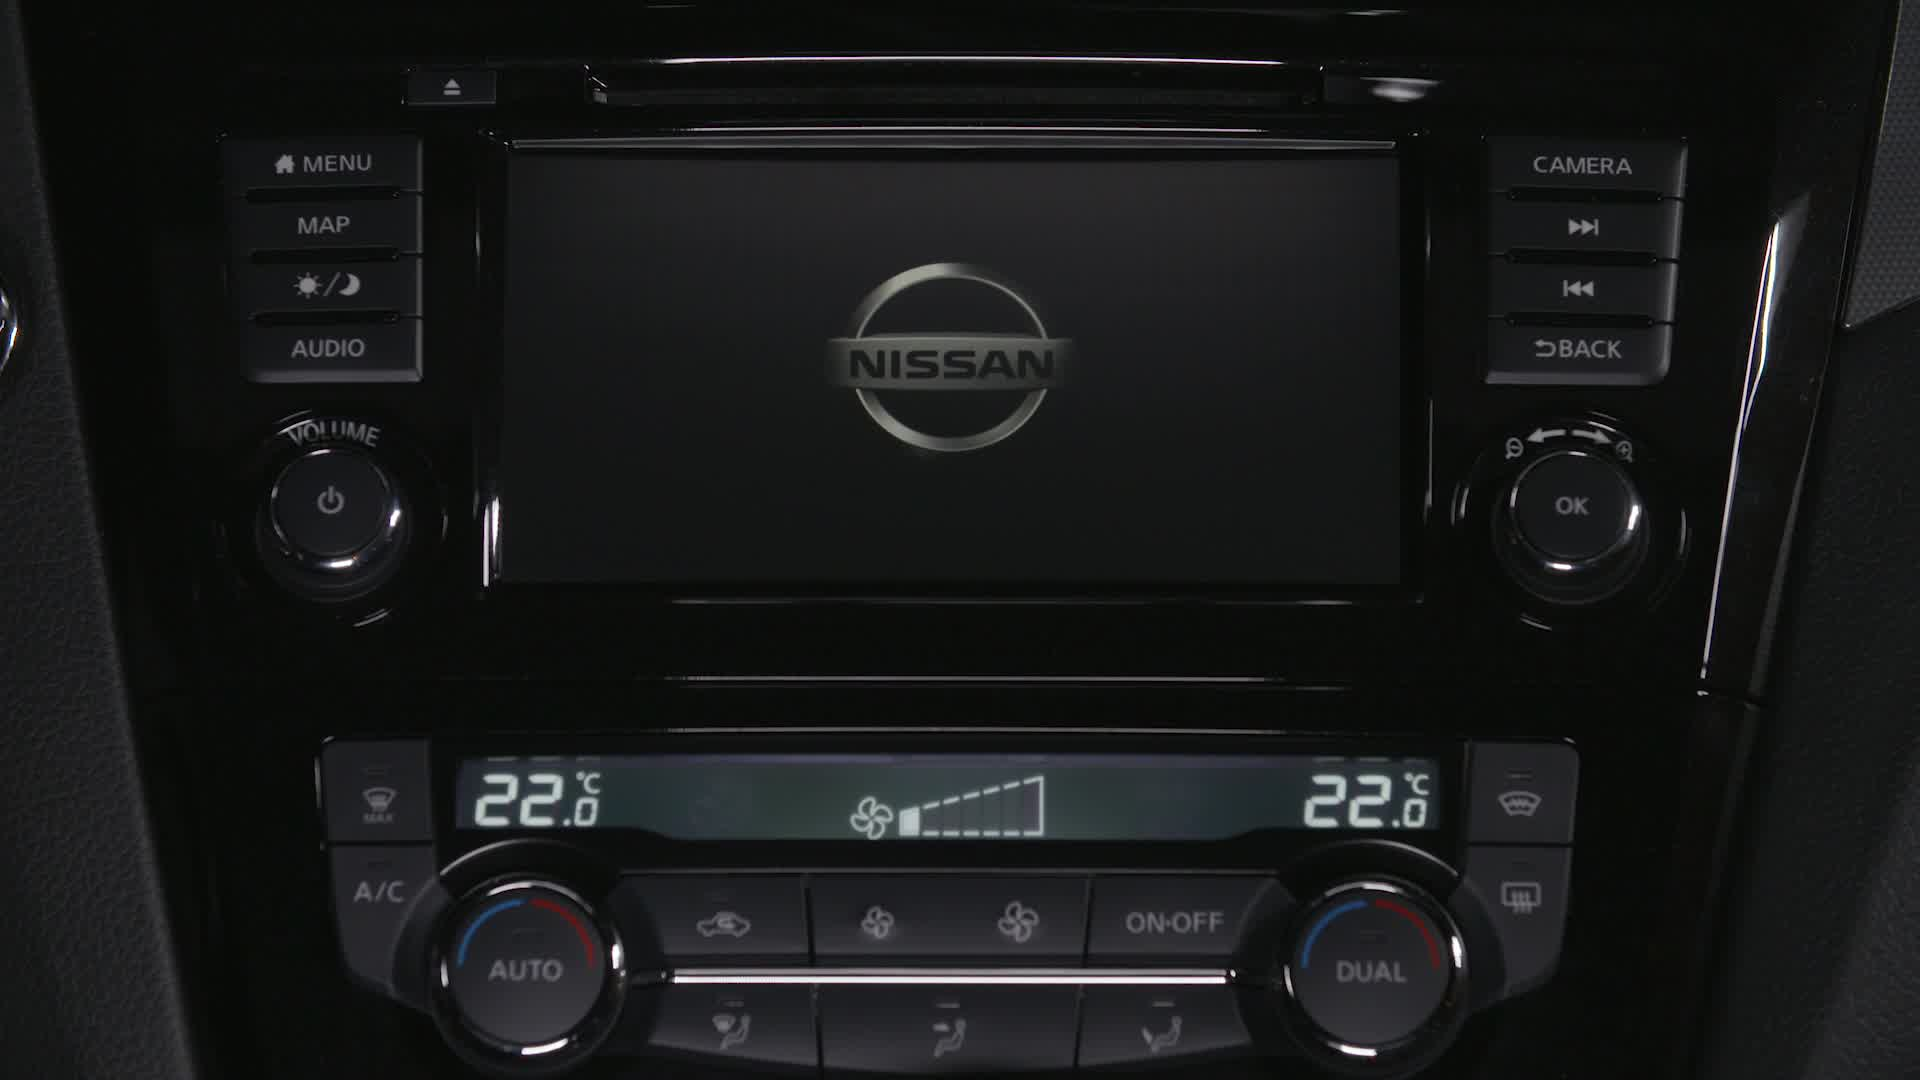 New NissanConnect infotainment system now available in